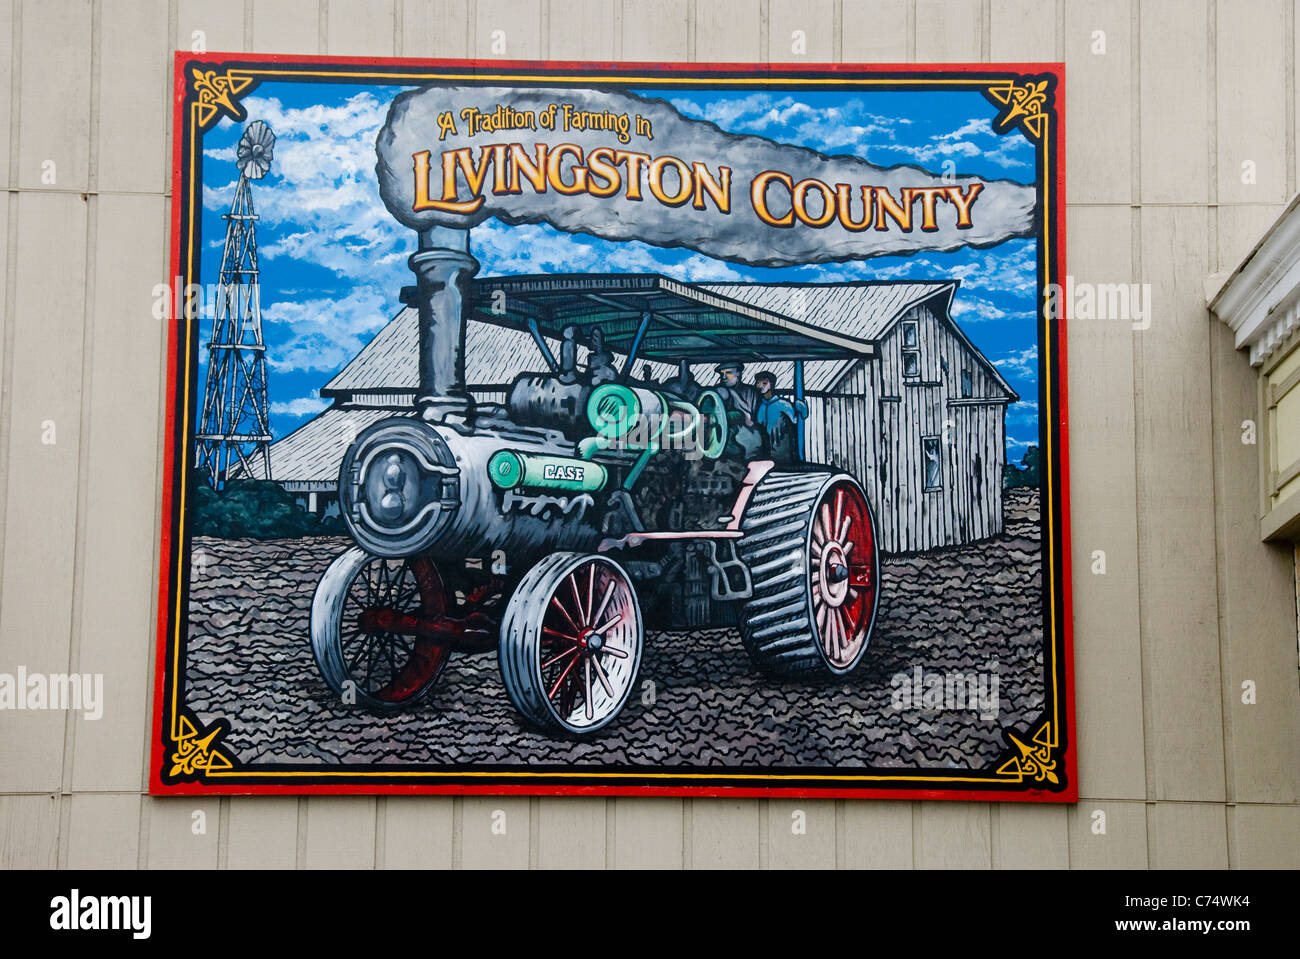 Mural of steam traction engine, Livingston County, Walldog Mural Project, Route 66, Pontiac, Illinois, USA - Stock Image